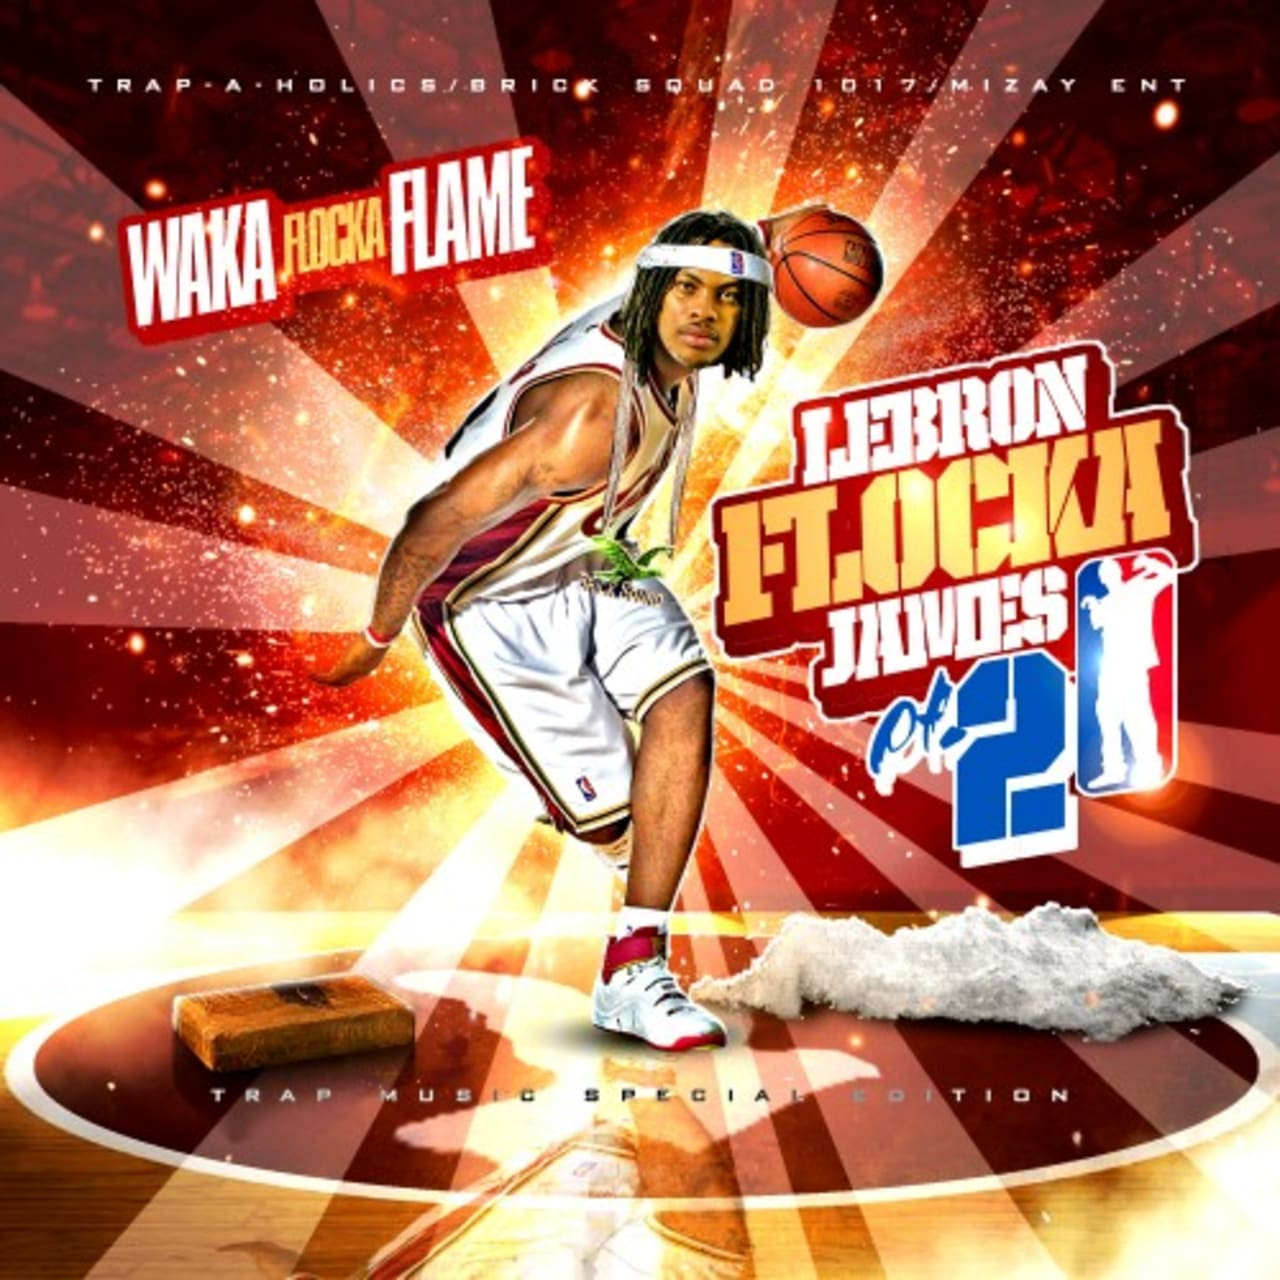 Download It Now: Waka Flocka Flame